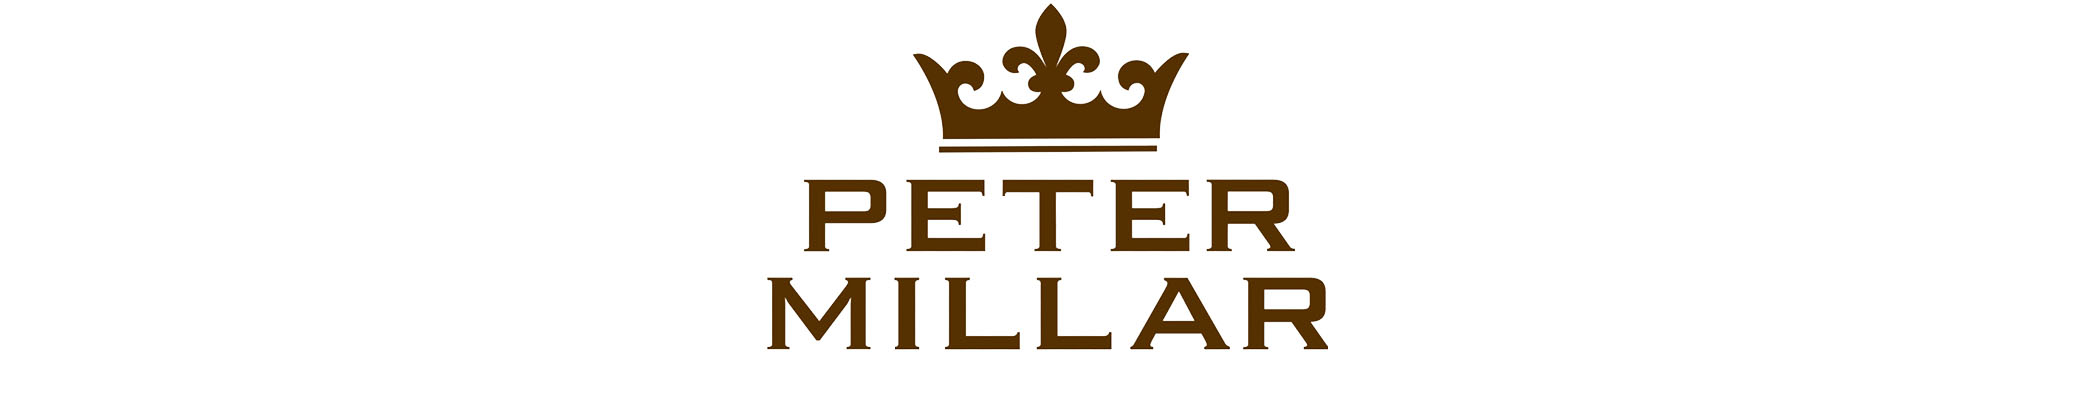 Corporate Swag Kit for Peter Millar